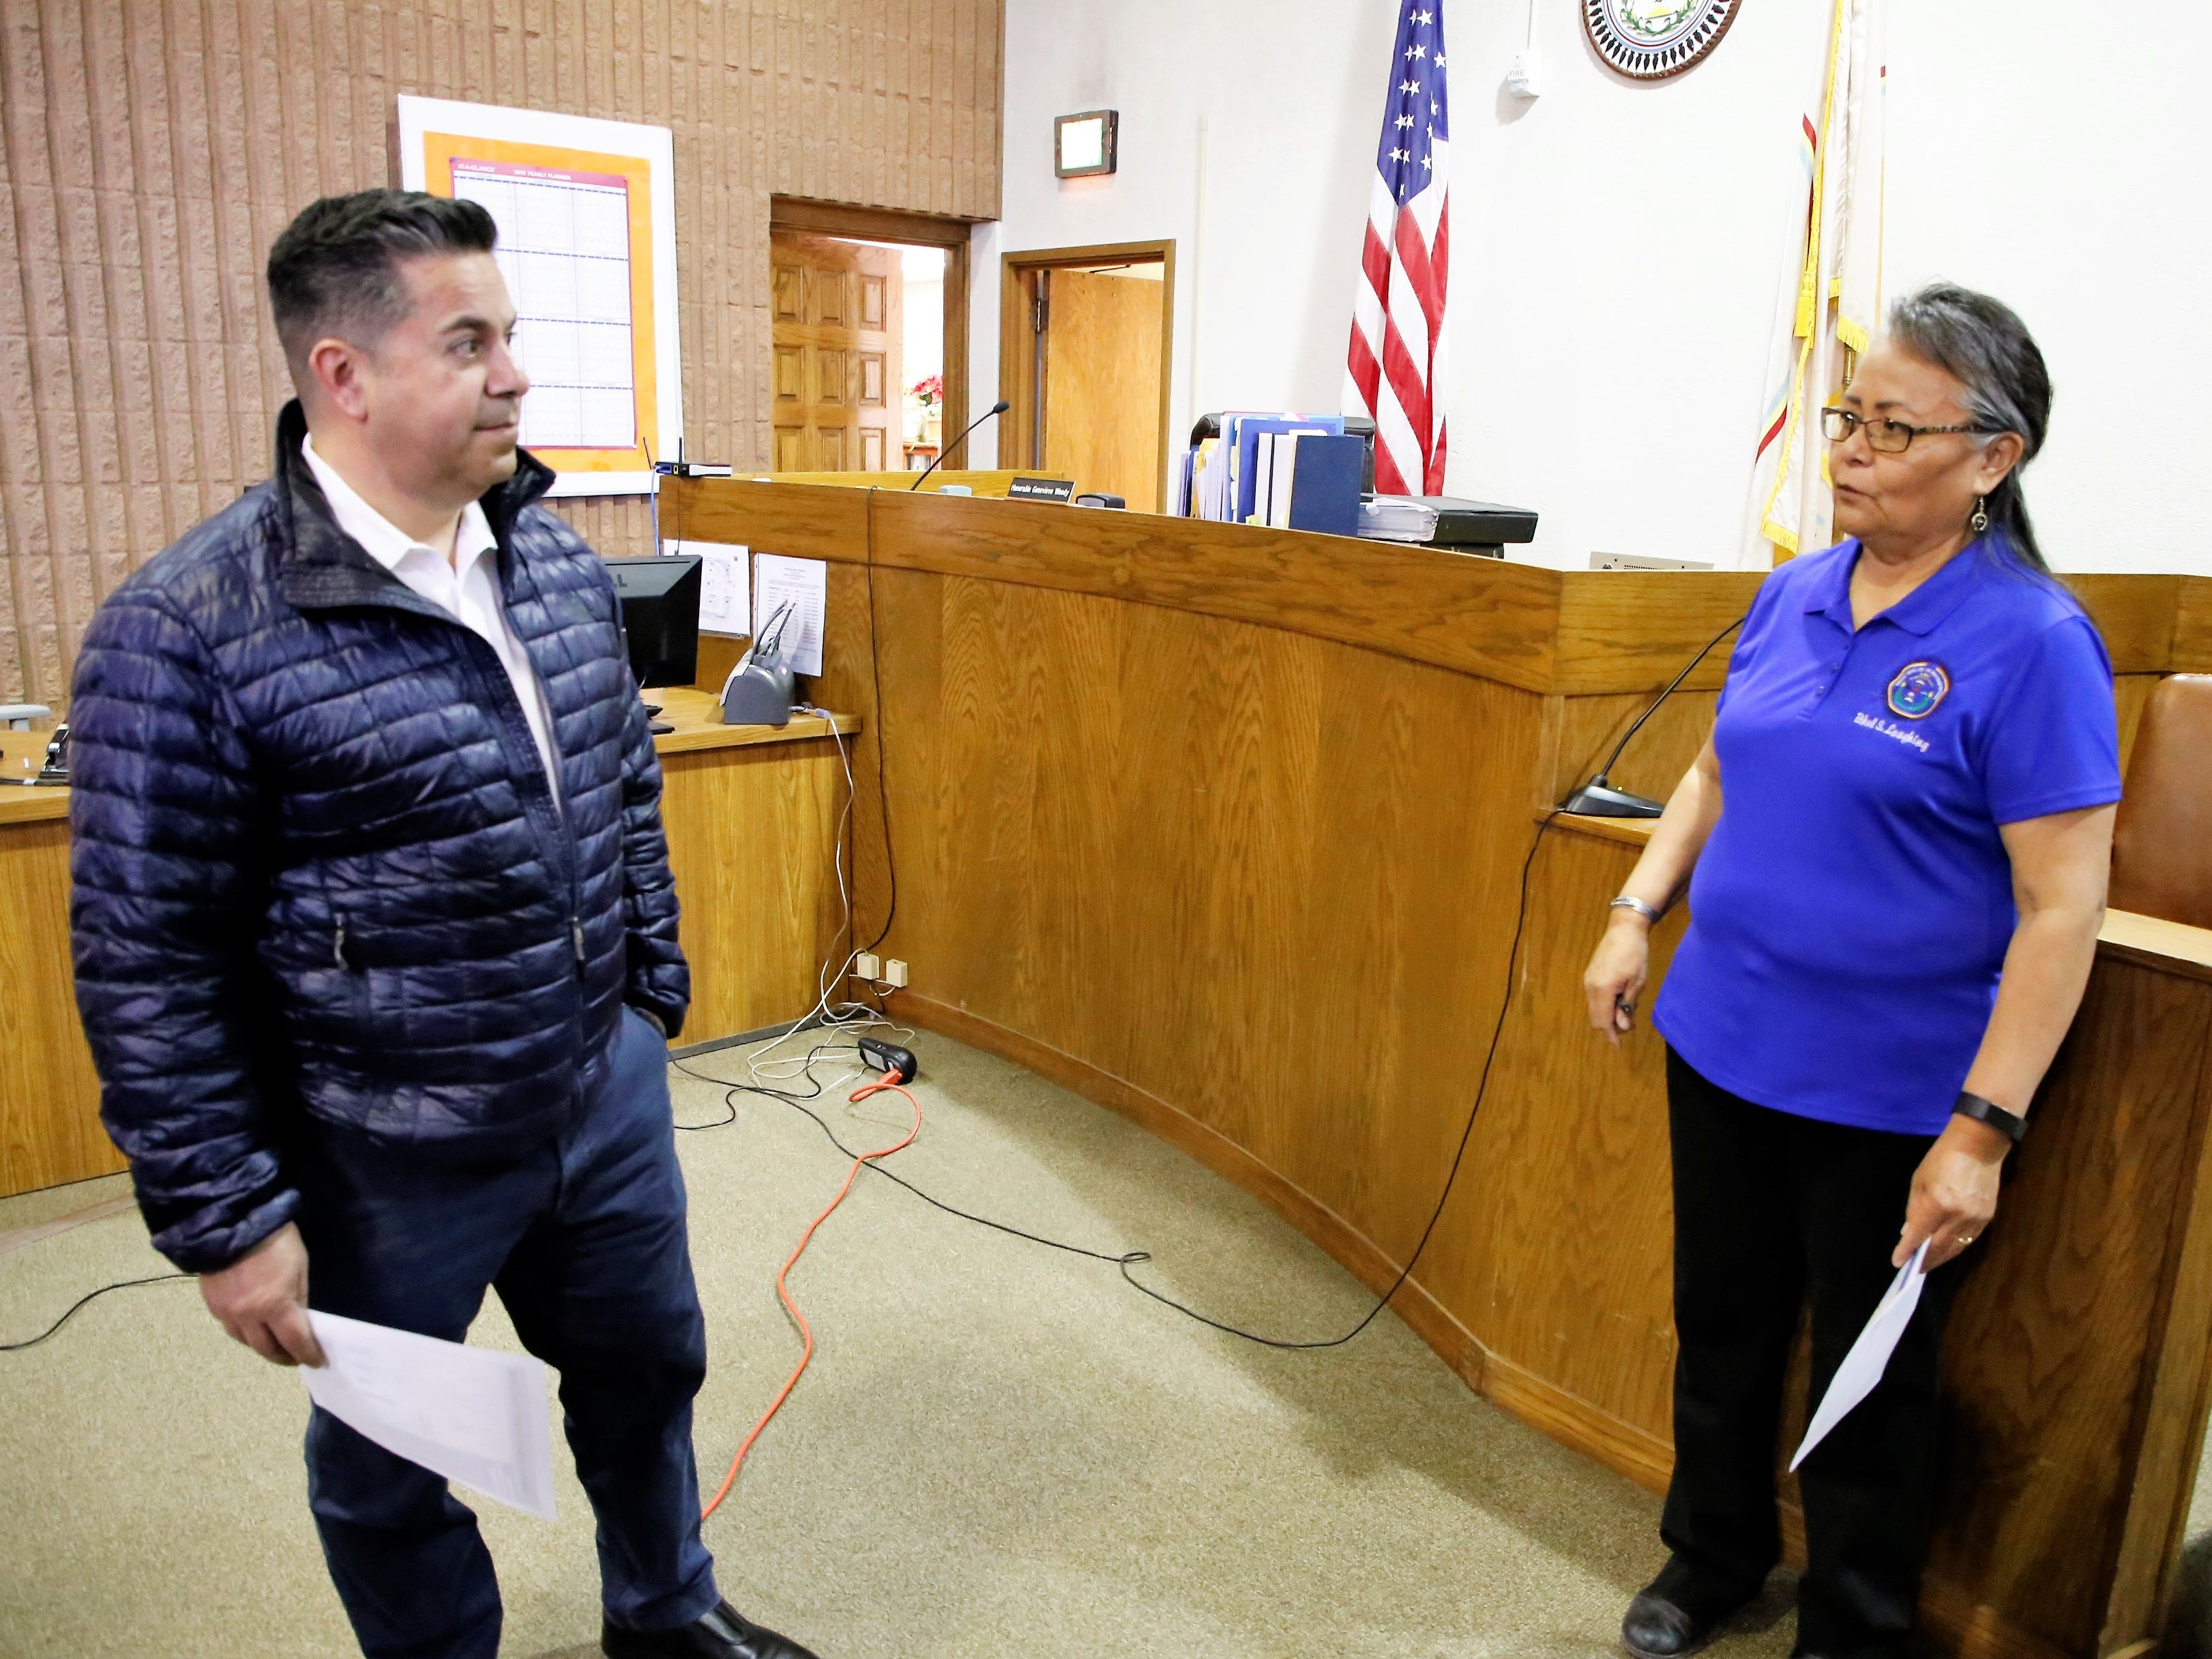 U.S. Rep. Ben Ray Luján, D-N.M., left, speaks to Shiprock Judicial District Court Administer Ethel Laughing, right, about the condition of the courthouse building during a tour Friday.